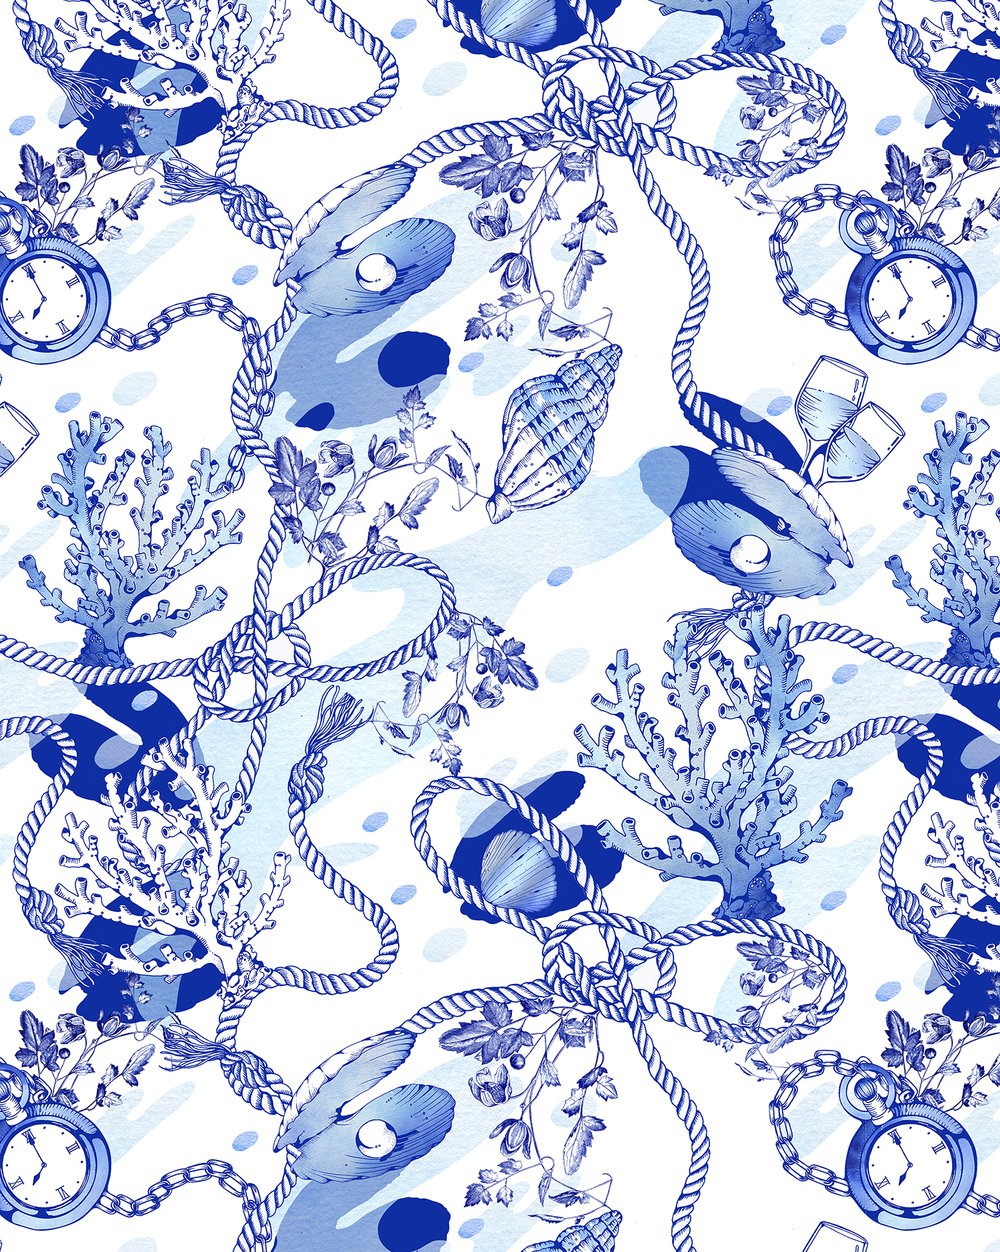 PommeChan_Sea_Pattern.jpg